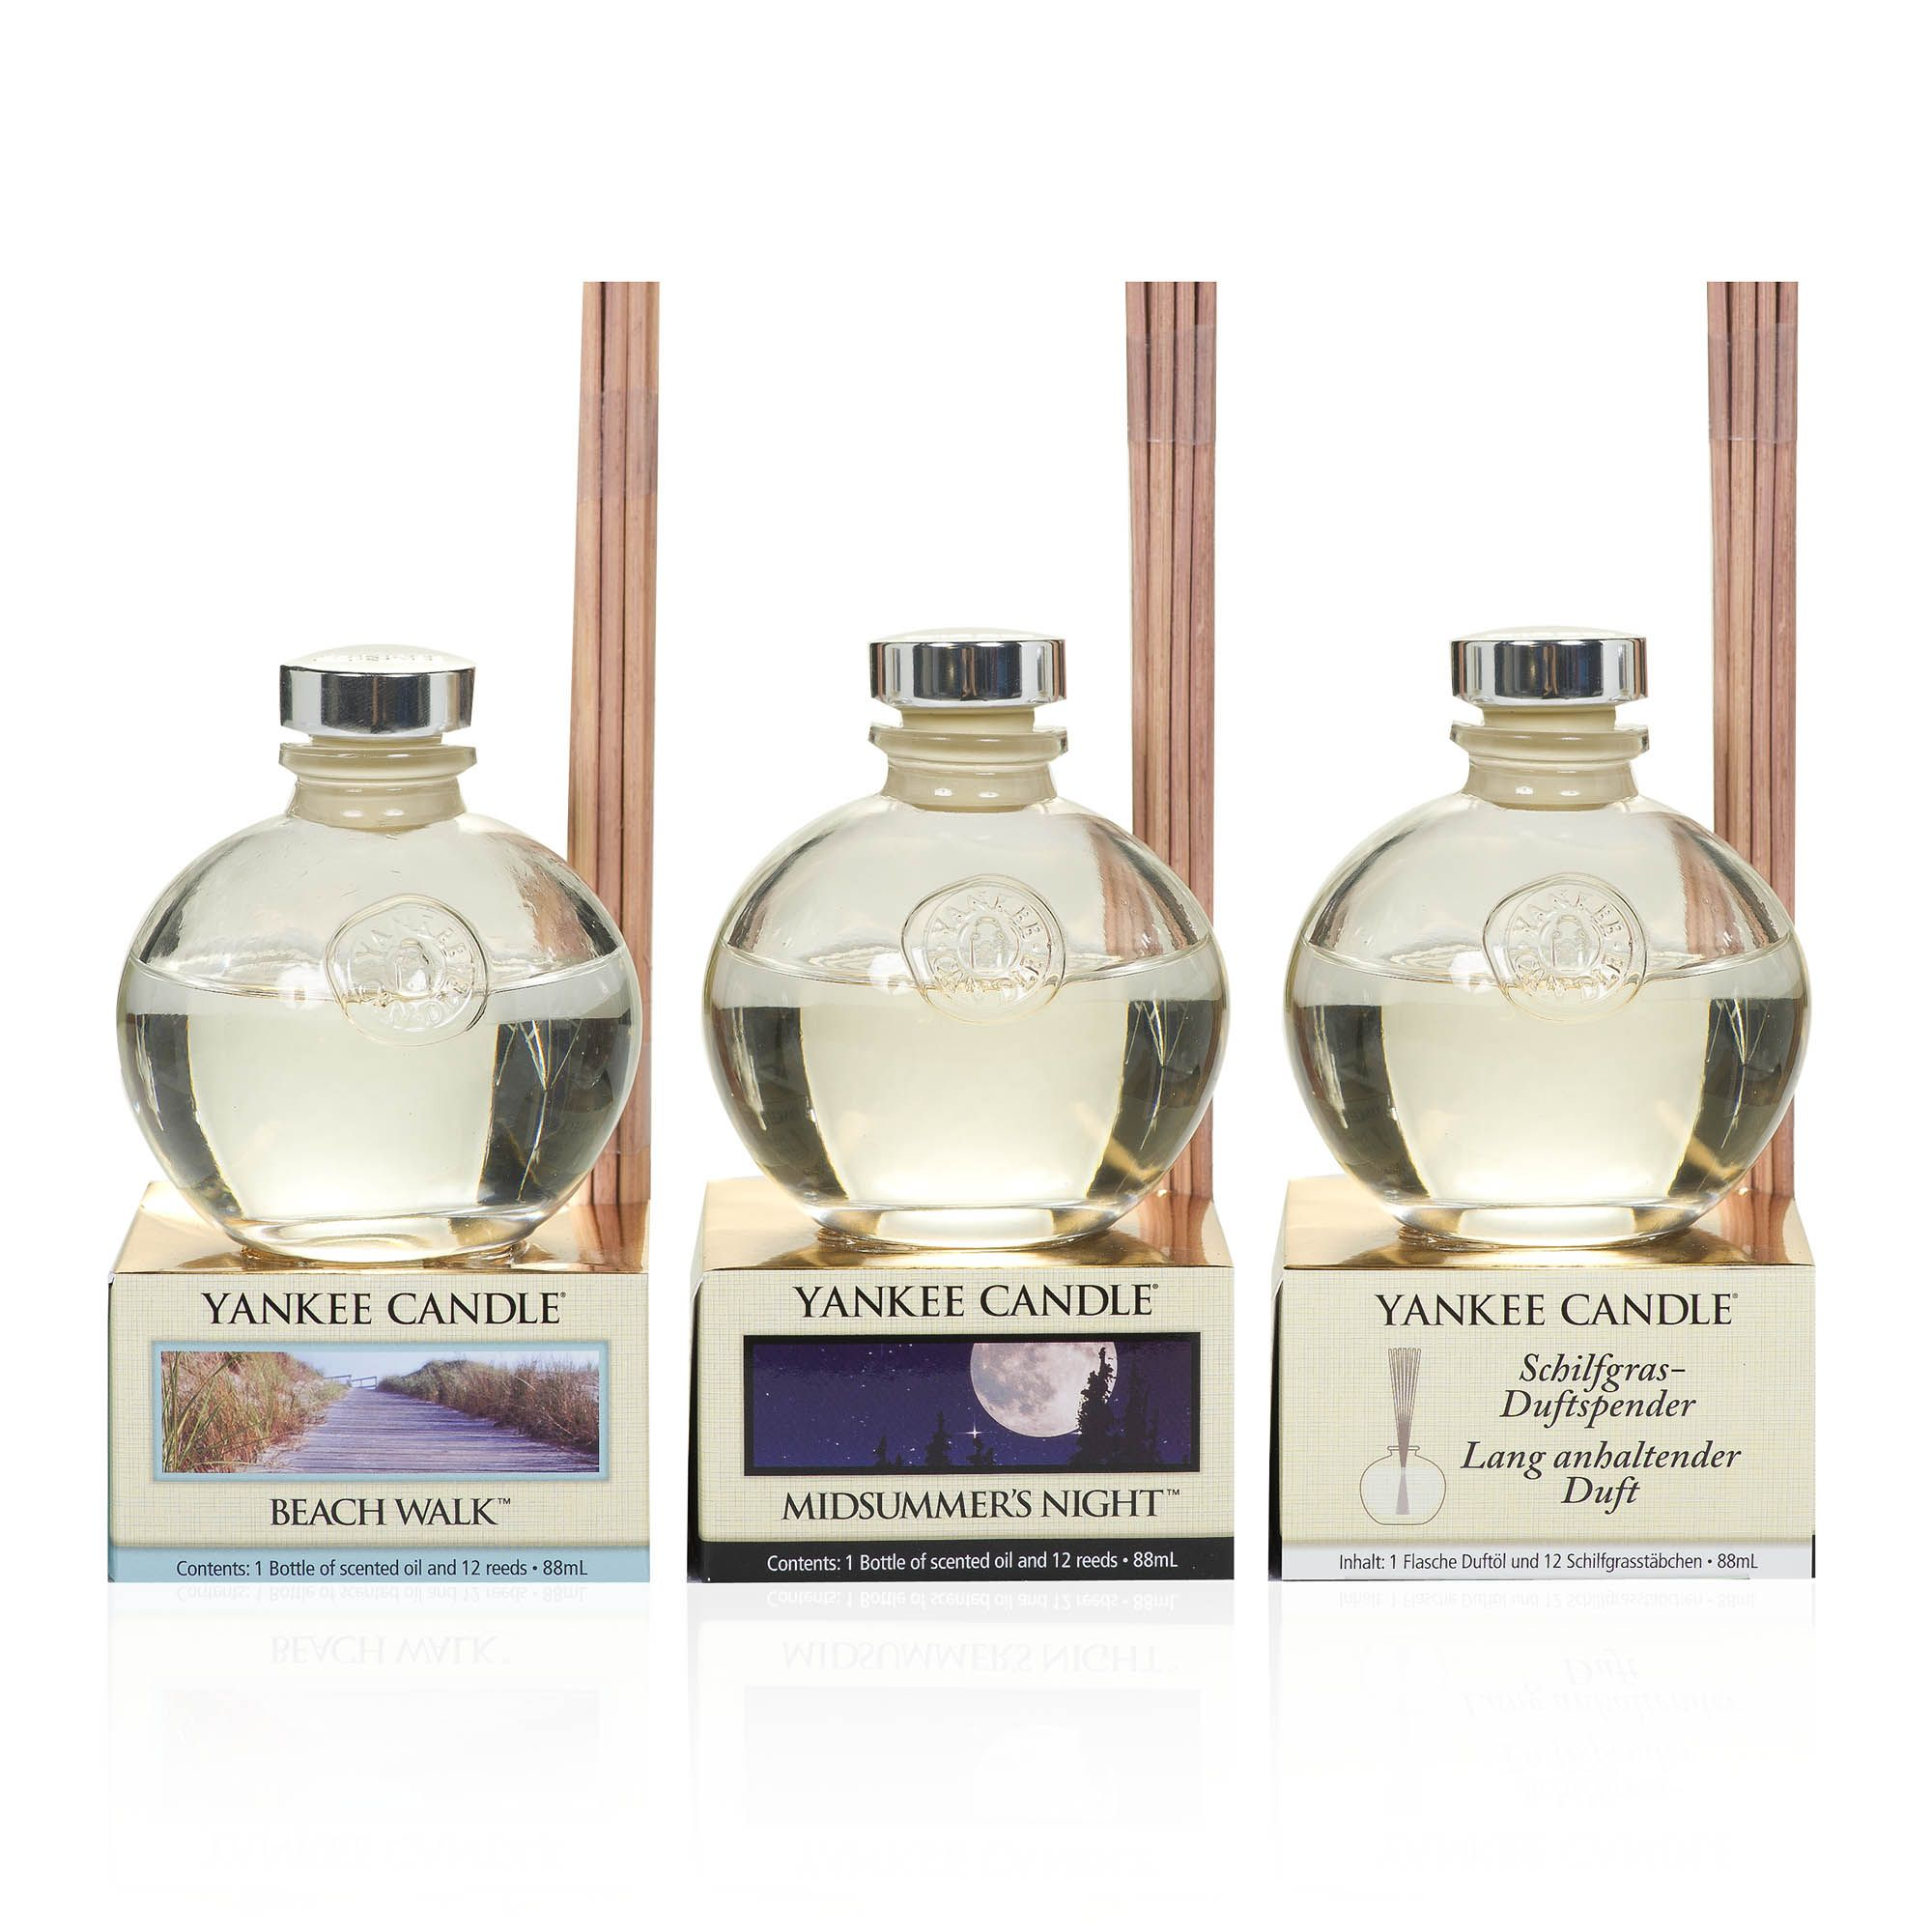 Yankee Candle Set 3 diffusori con bastoncini in legno in 3 fragranze